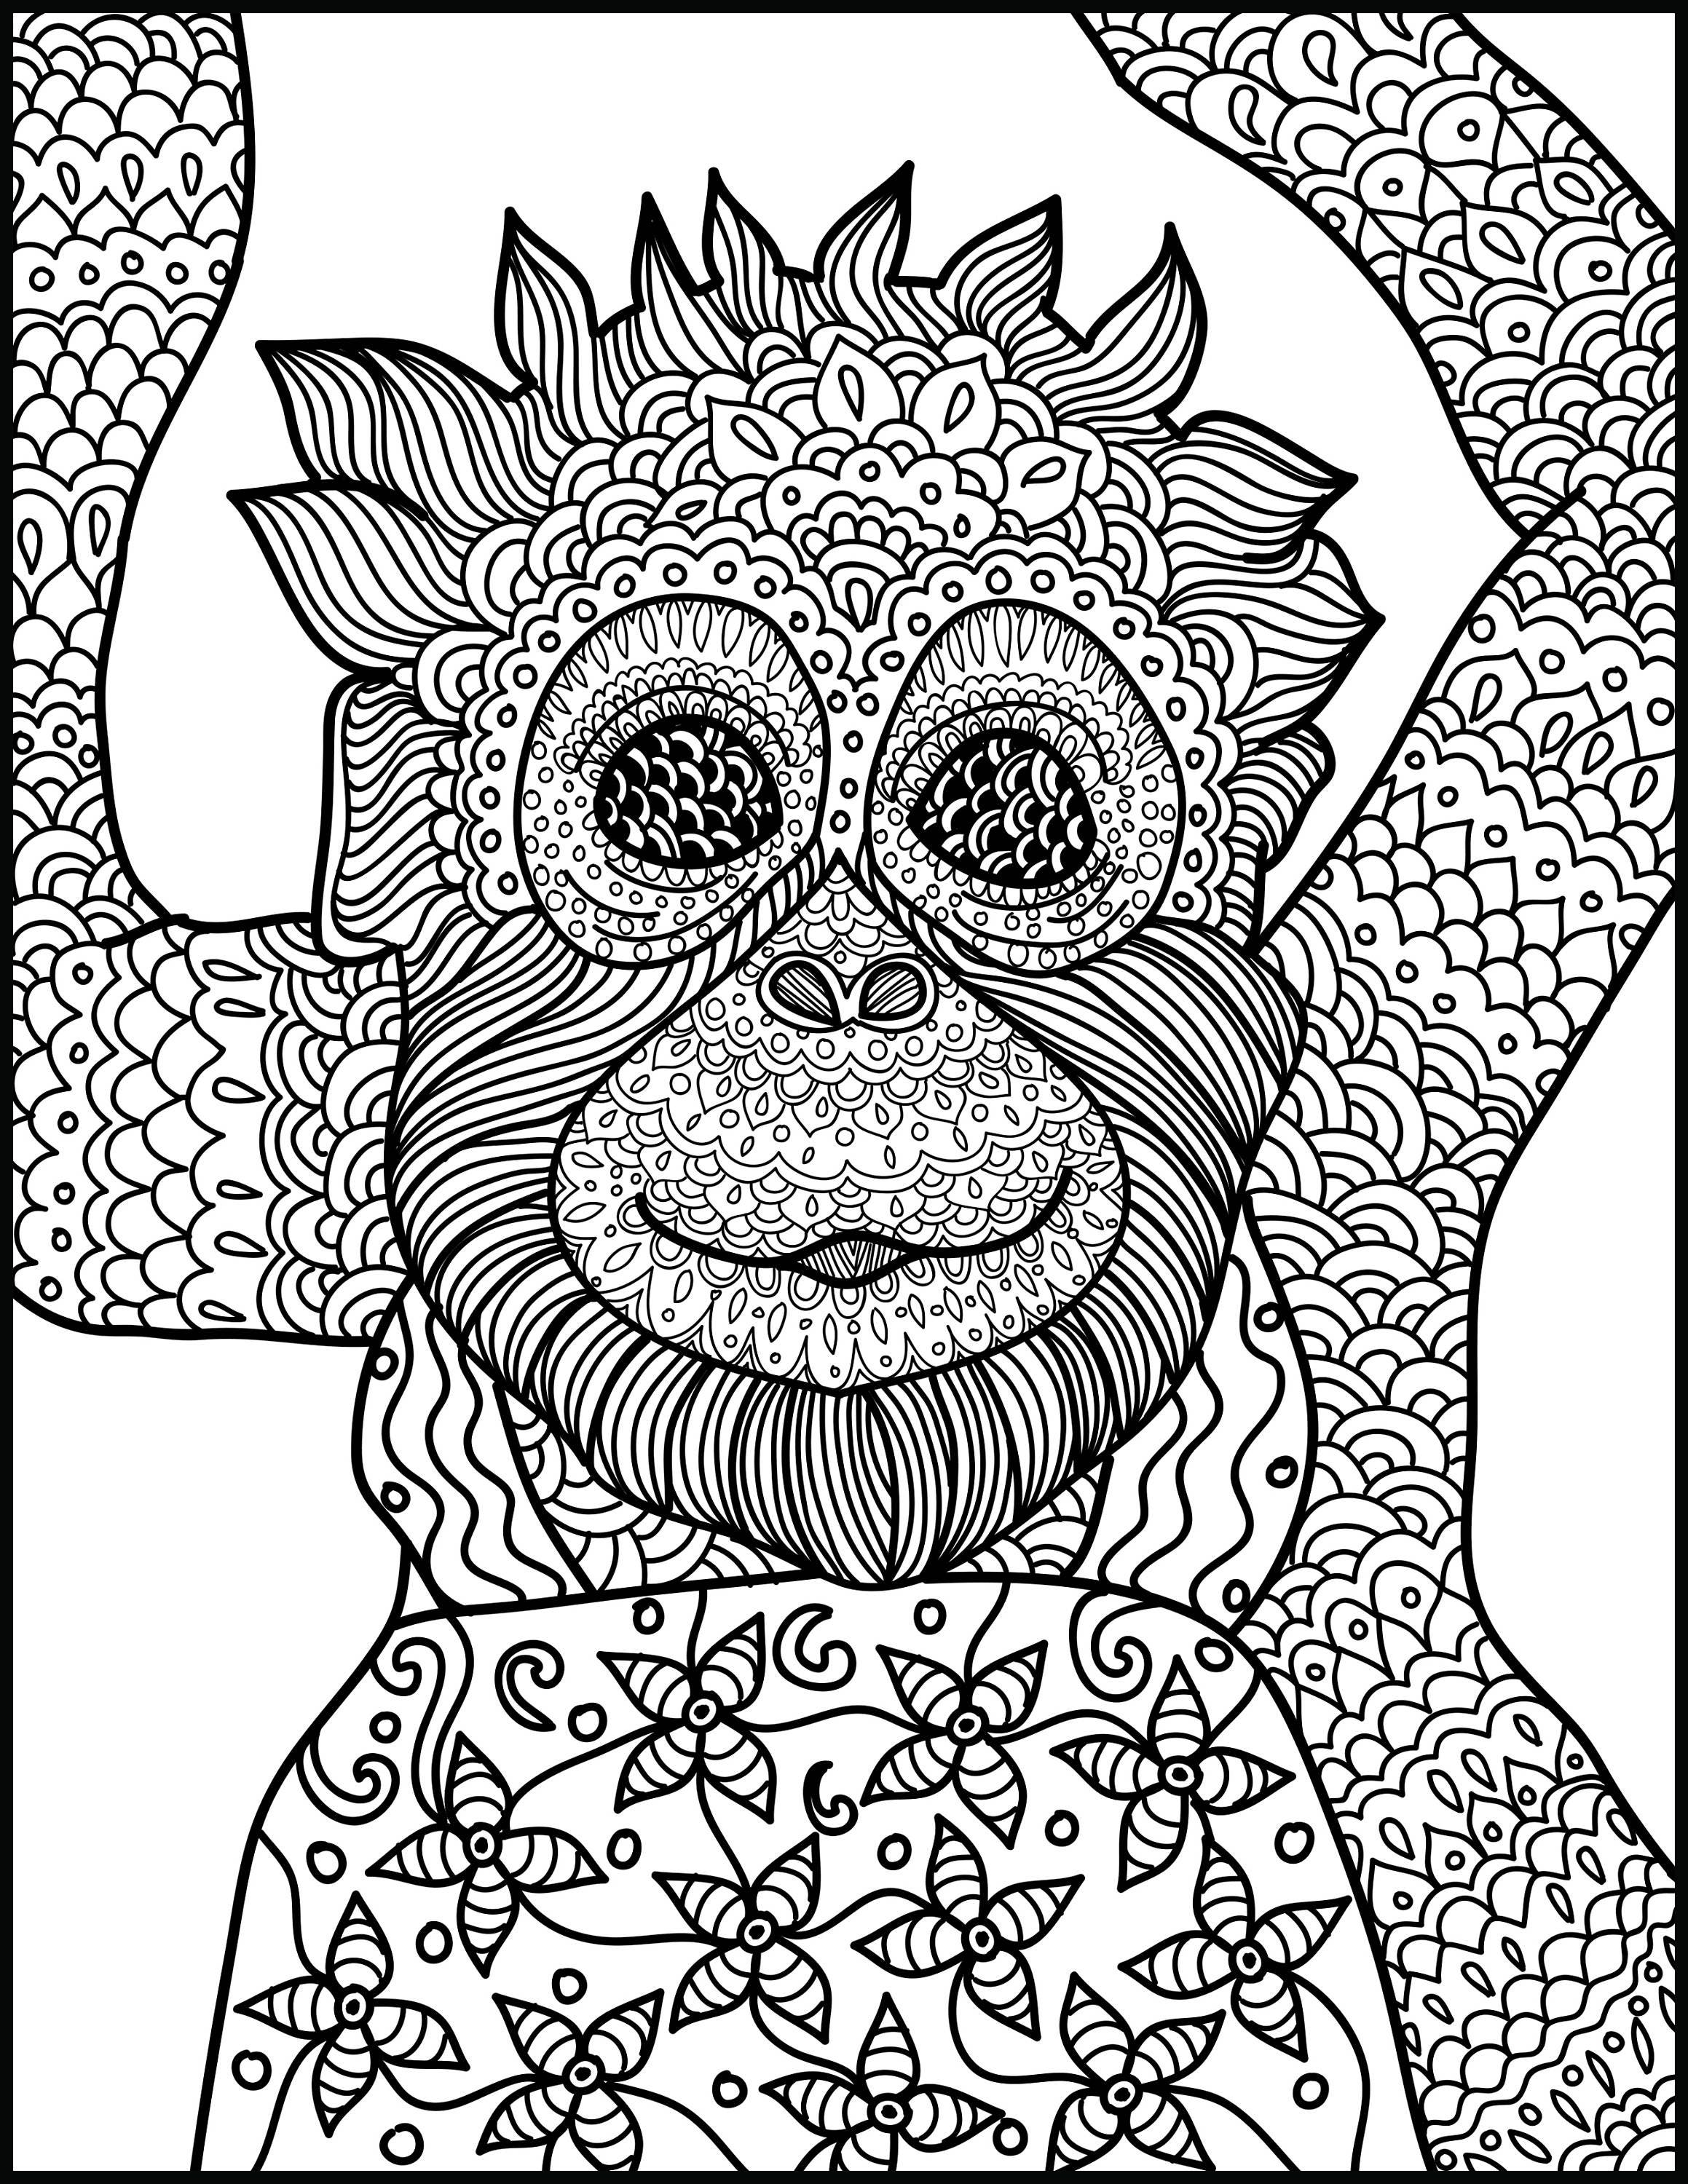 animal coloring page monkey printable adult coloring page. Black Bedroom Furniture Sets. Home Design Ideas